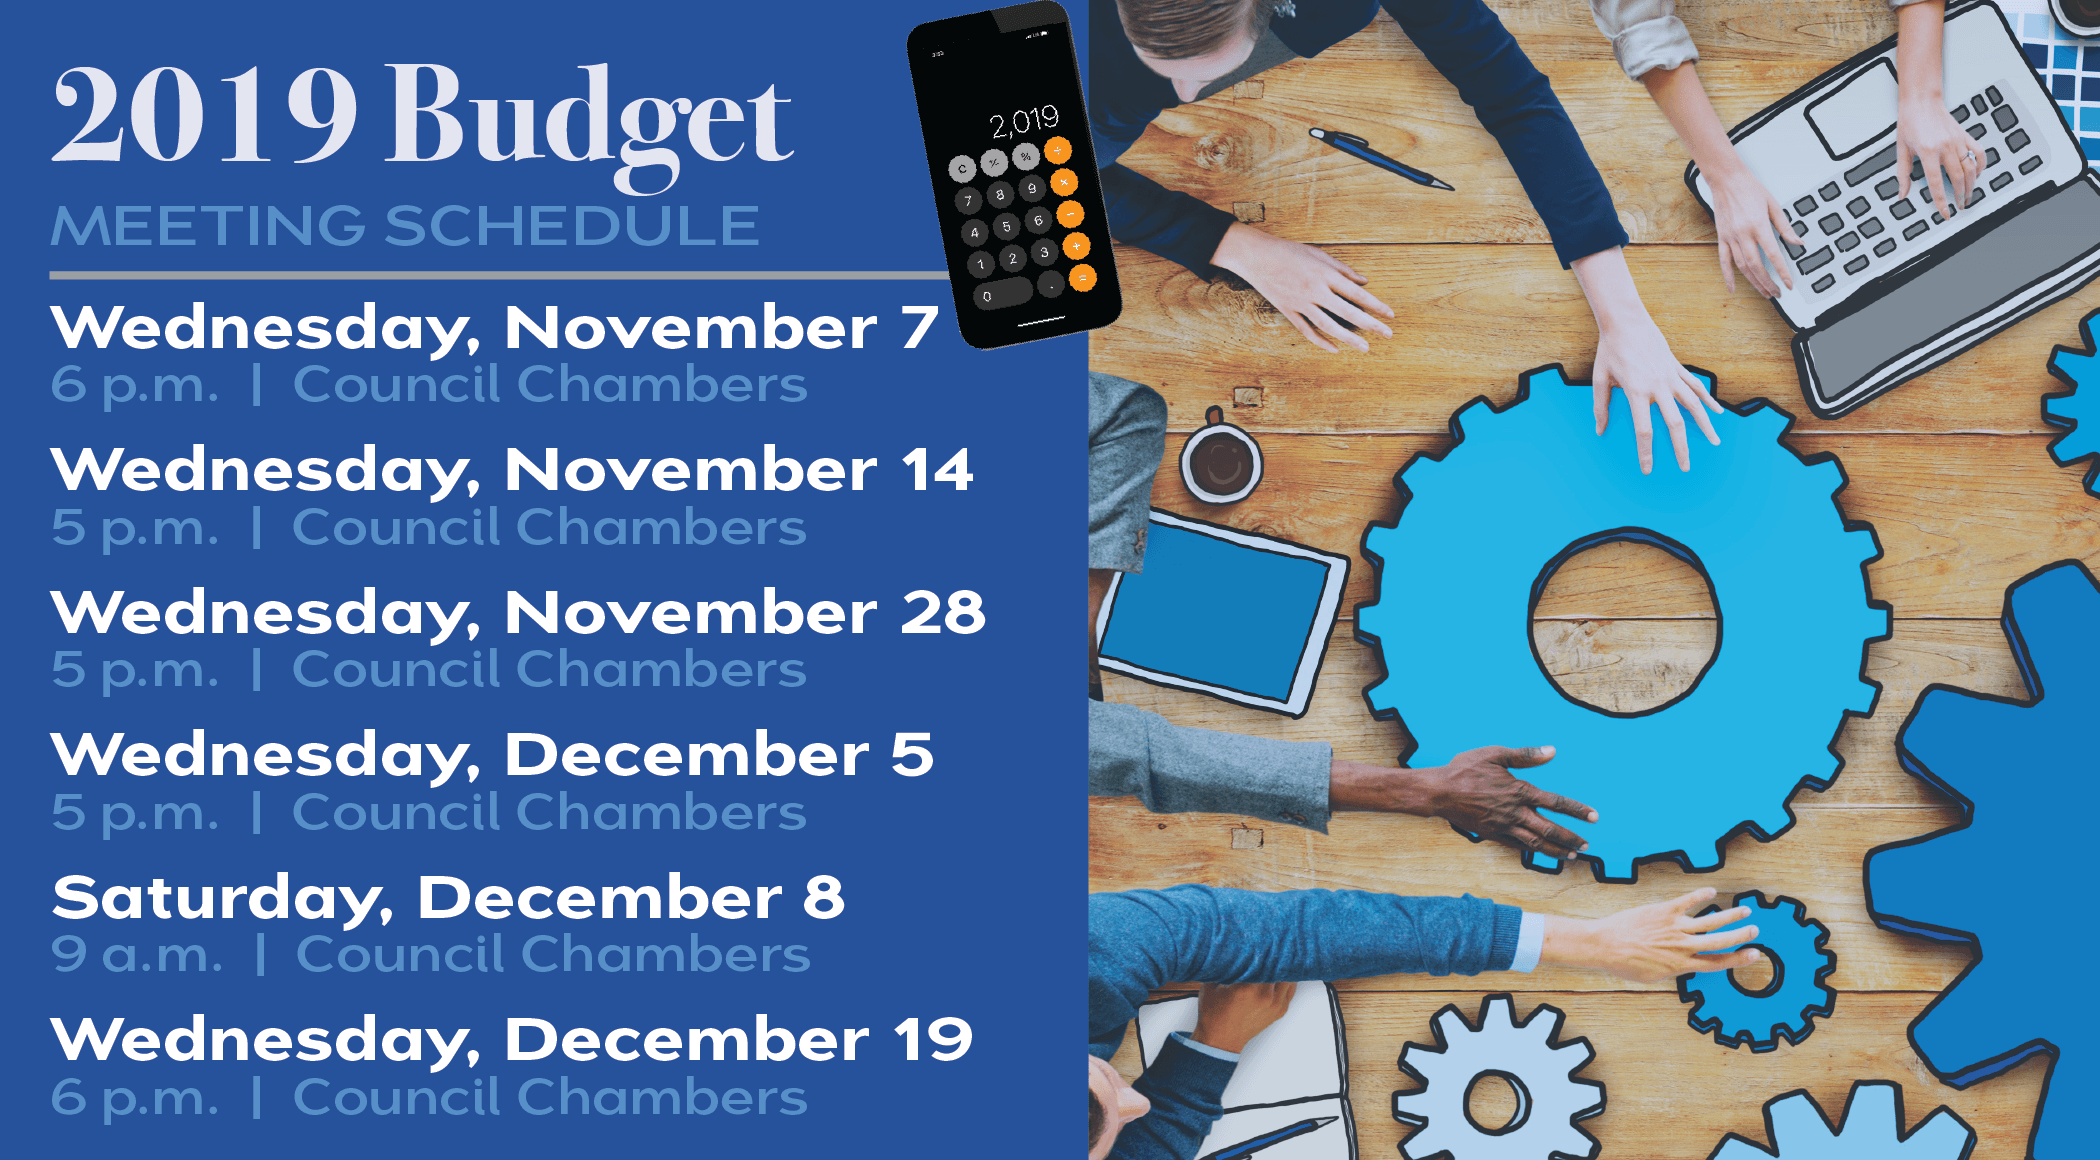 2019 Budget Meeting Schedule